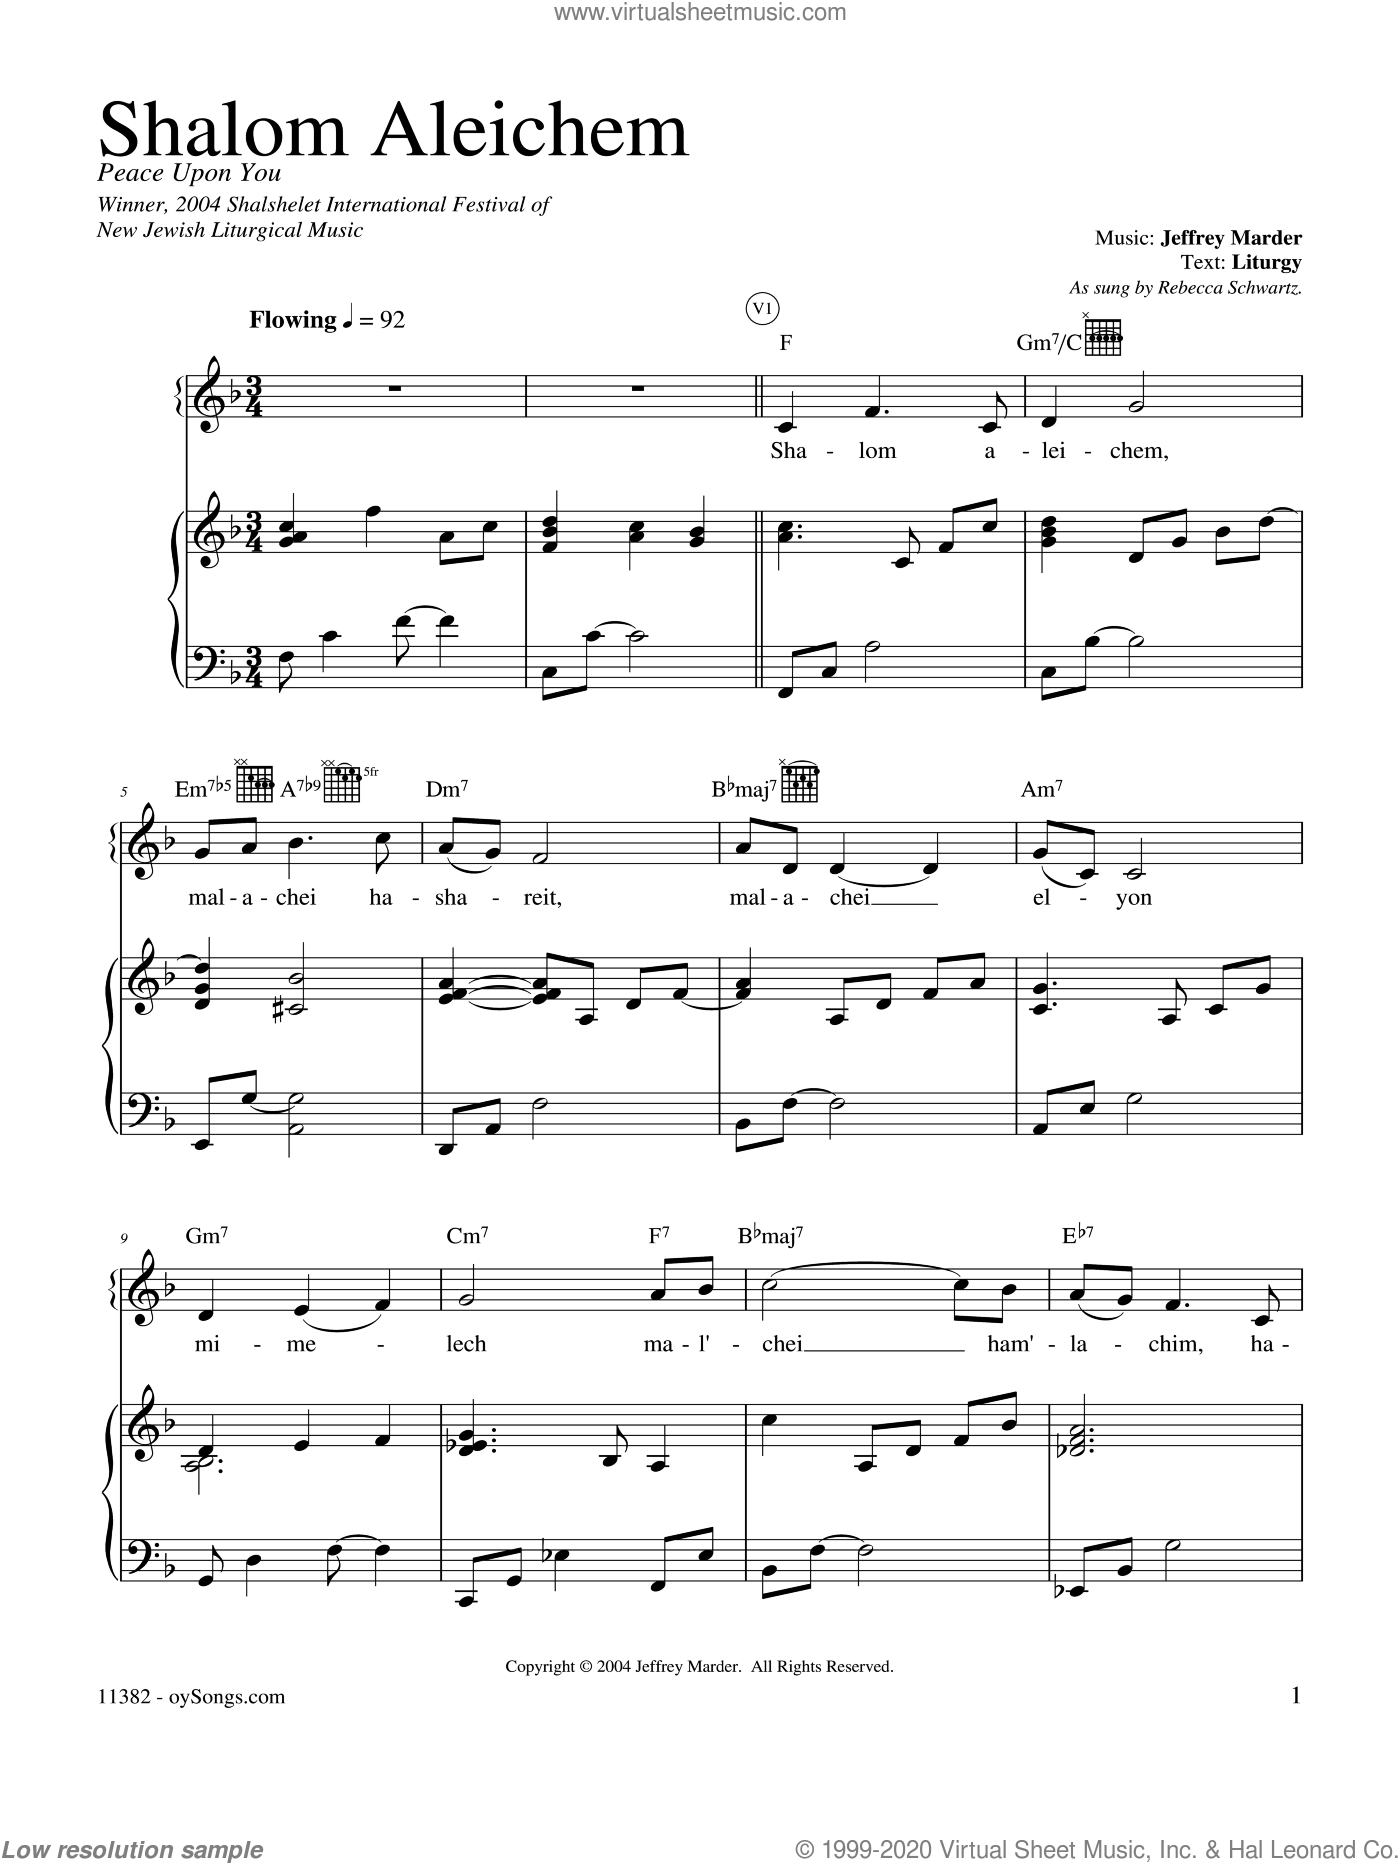 Shalom Aleichem sheet music for voice, piano or guitar by Jeff Marder